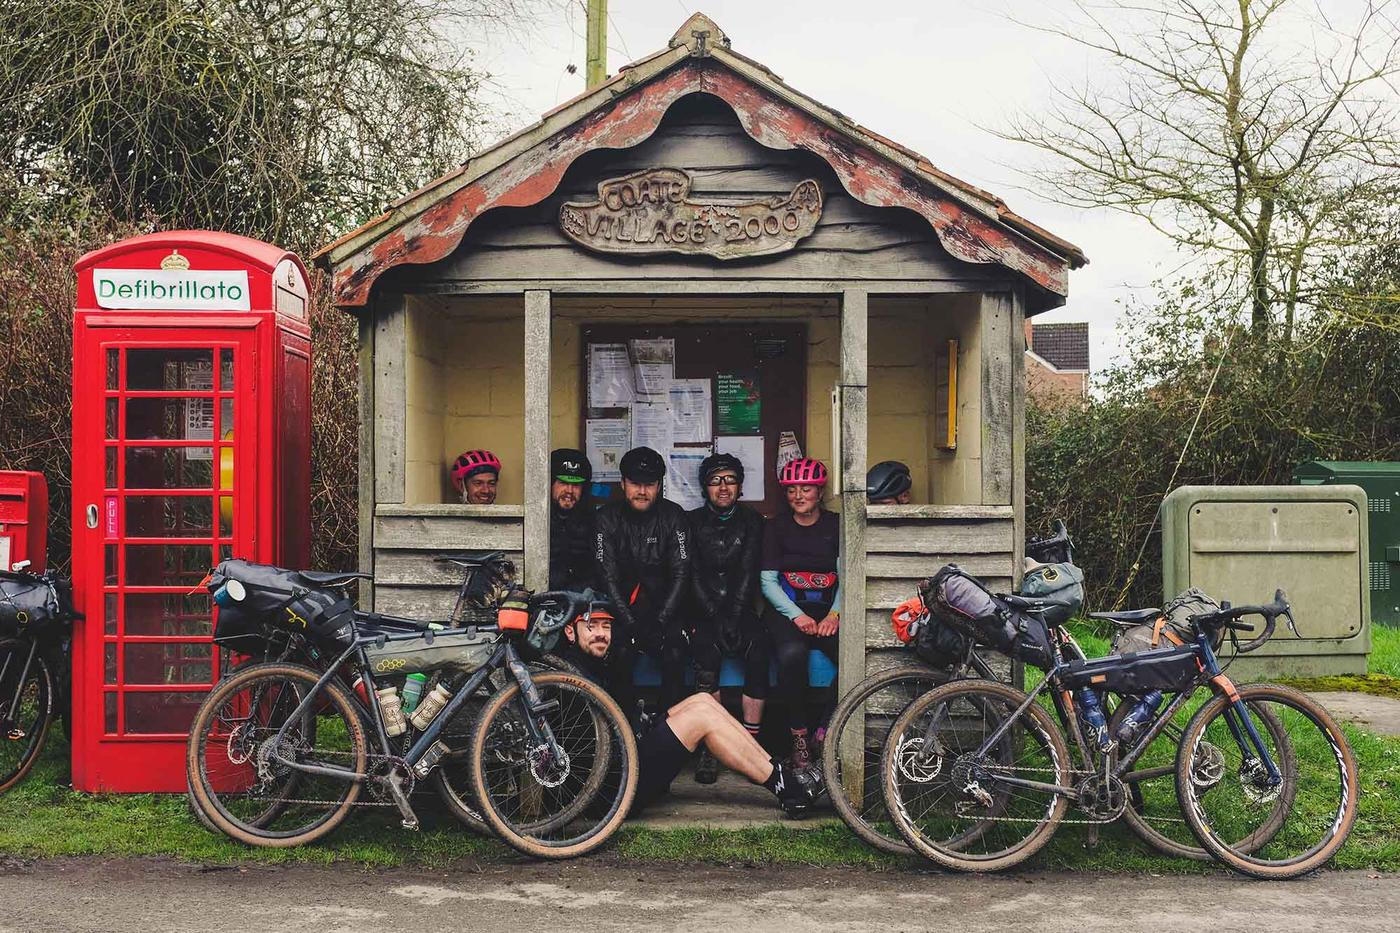 A Weekend Pedal Across the English Isle with Pannier